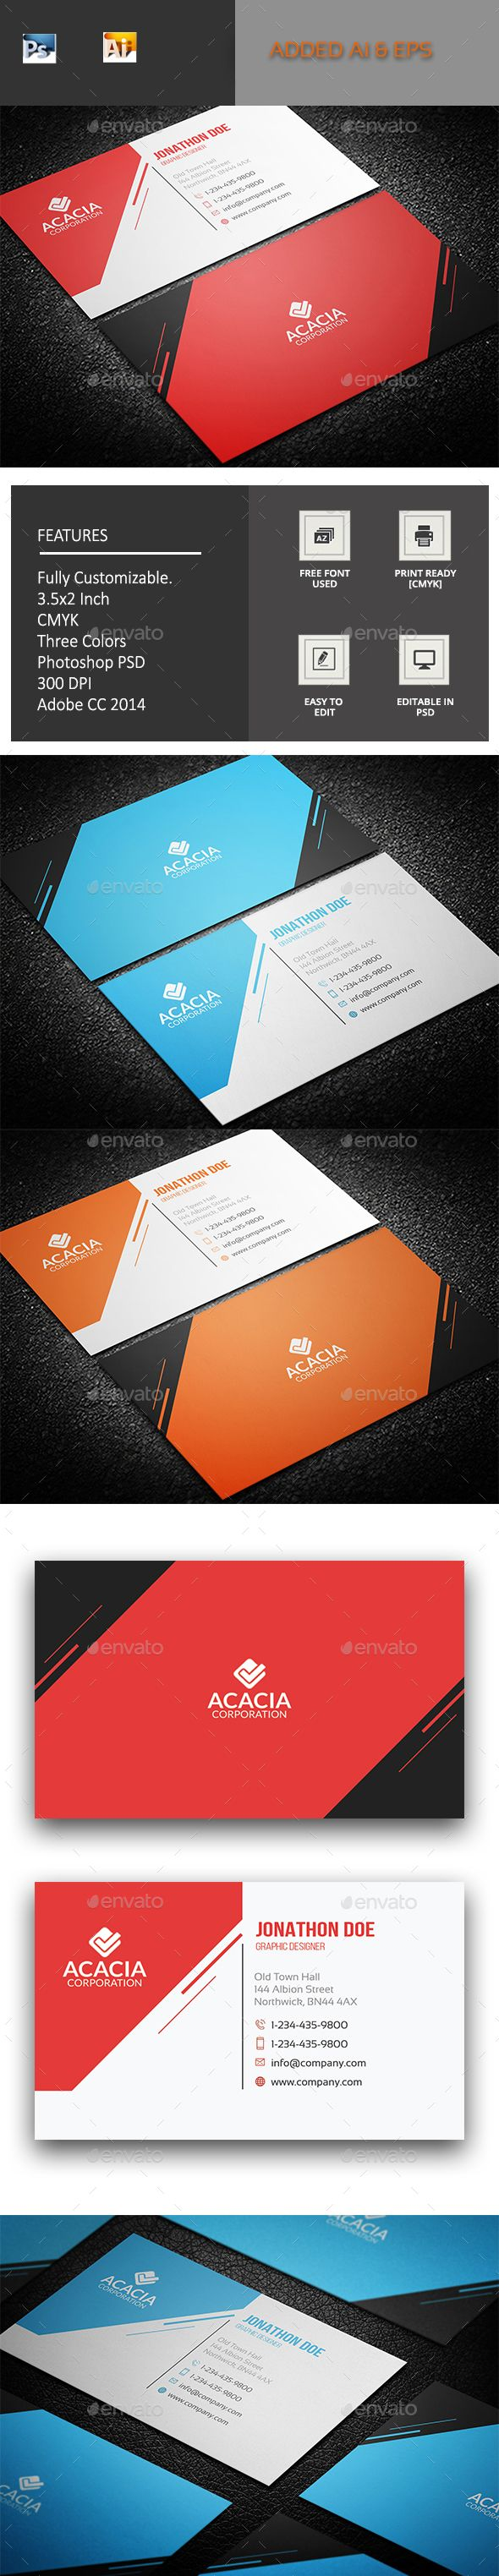 1750 Best Minimal Business Card Images On Pinterest Minimal